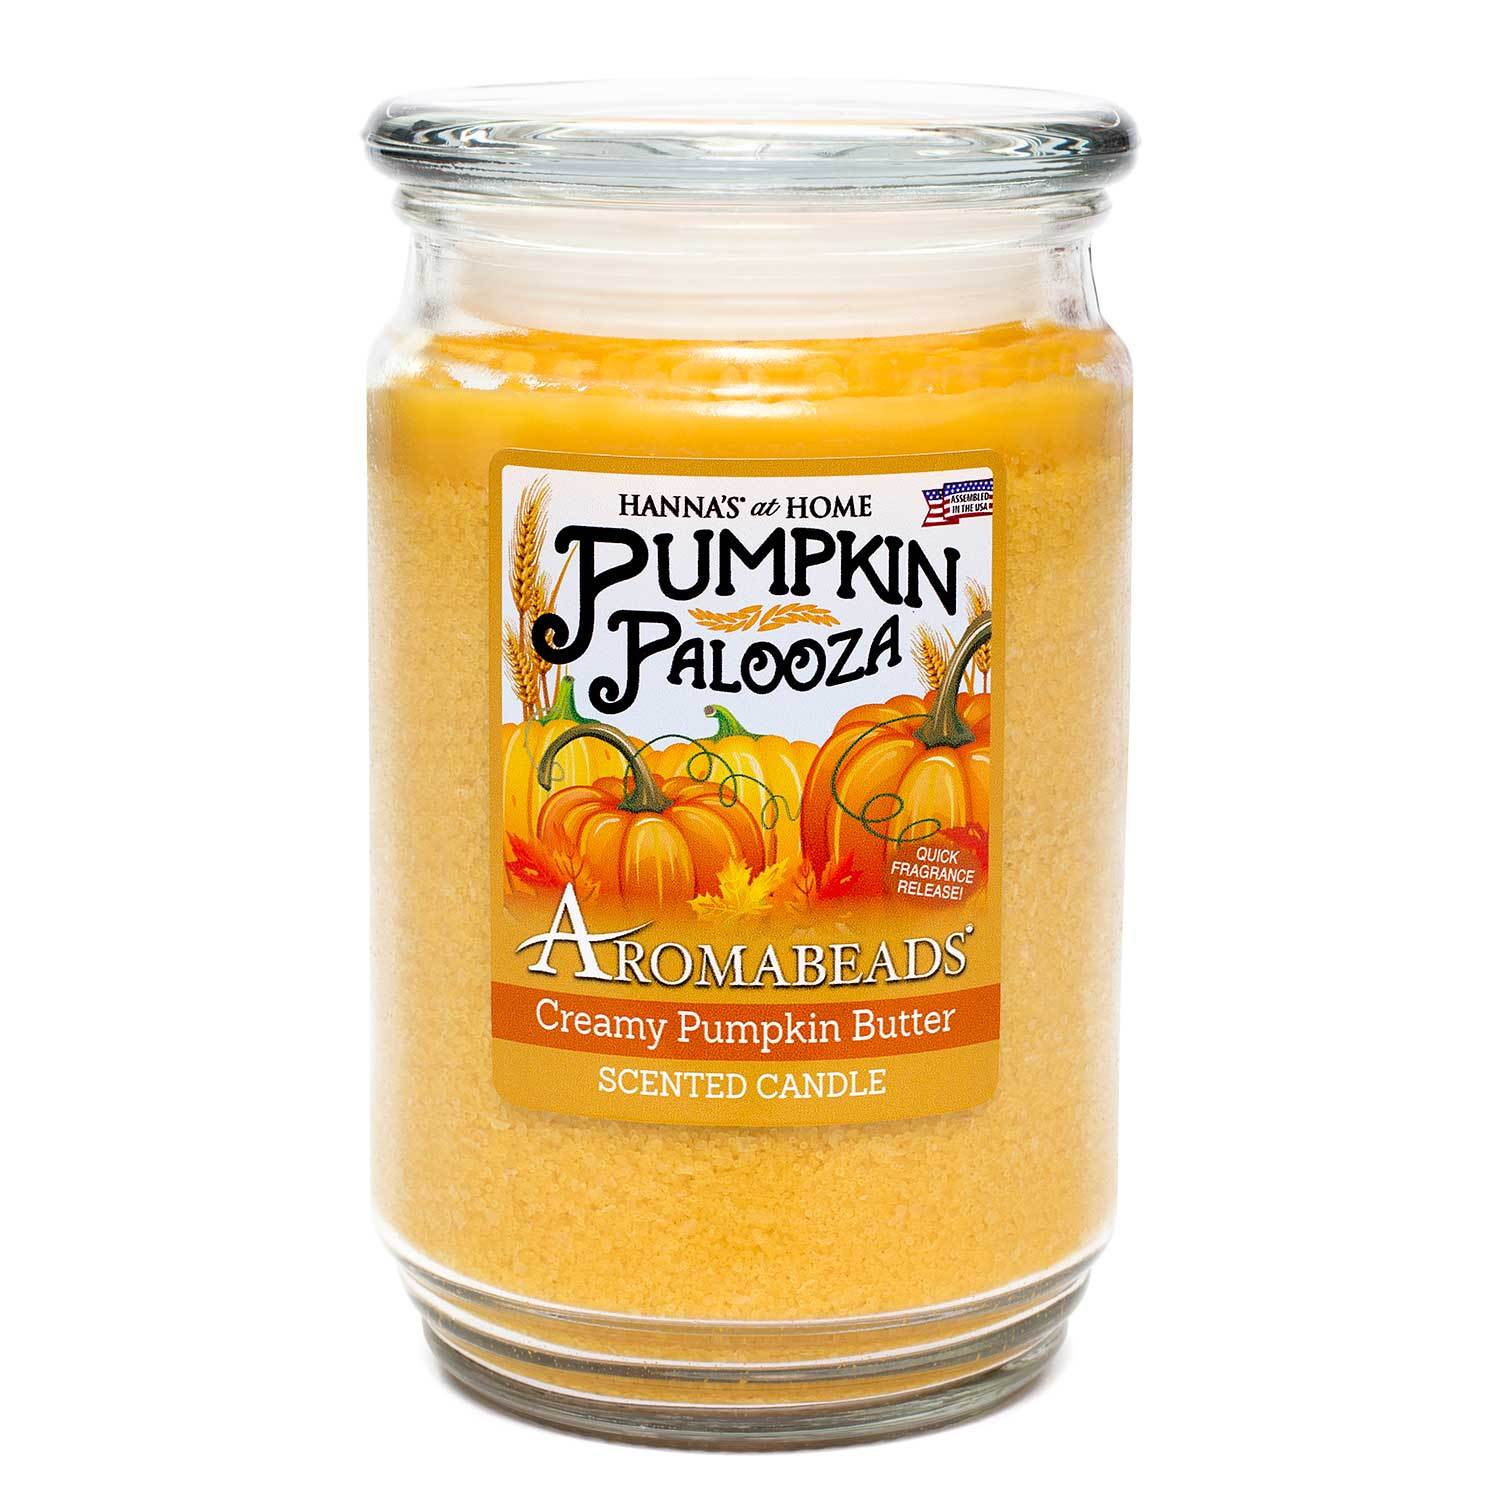 Buy Aromabeads Creamy Pumpkin Butter Scented Candle at ...